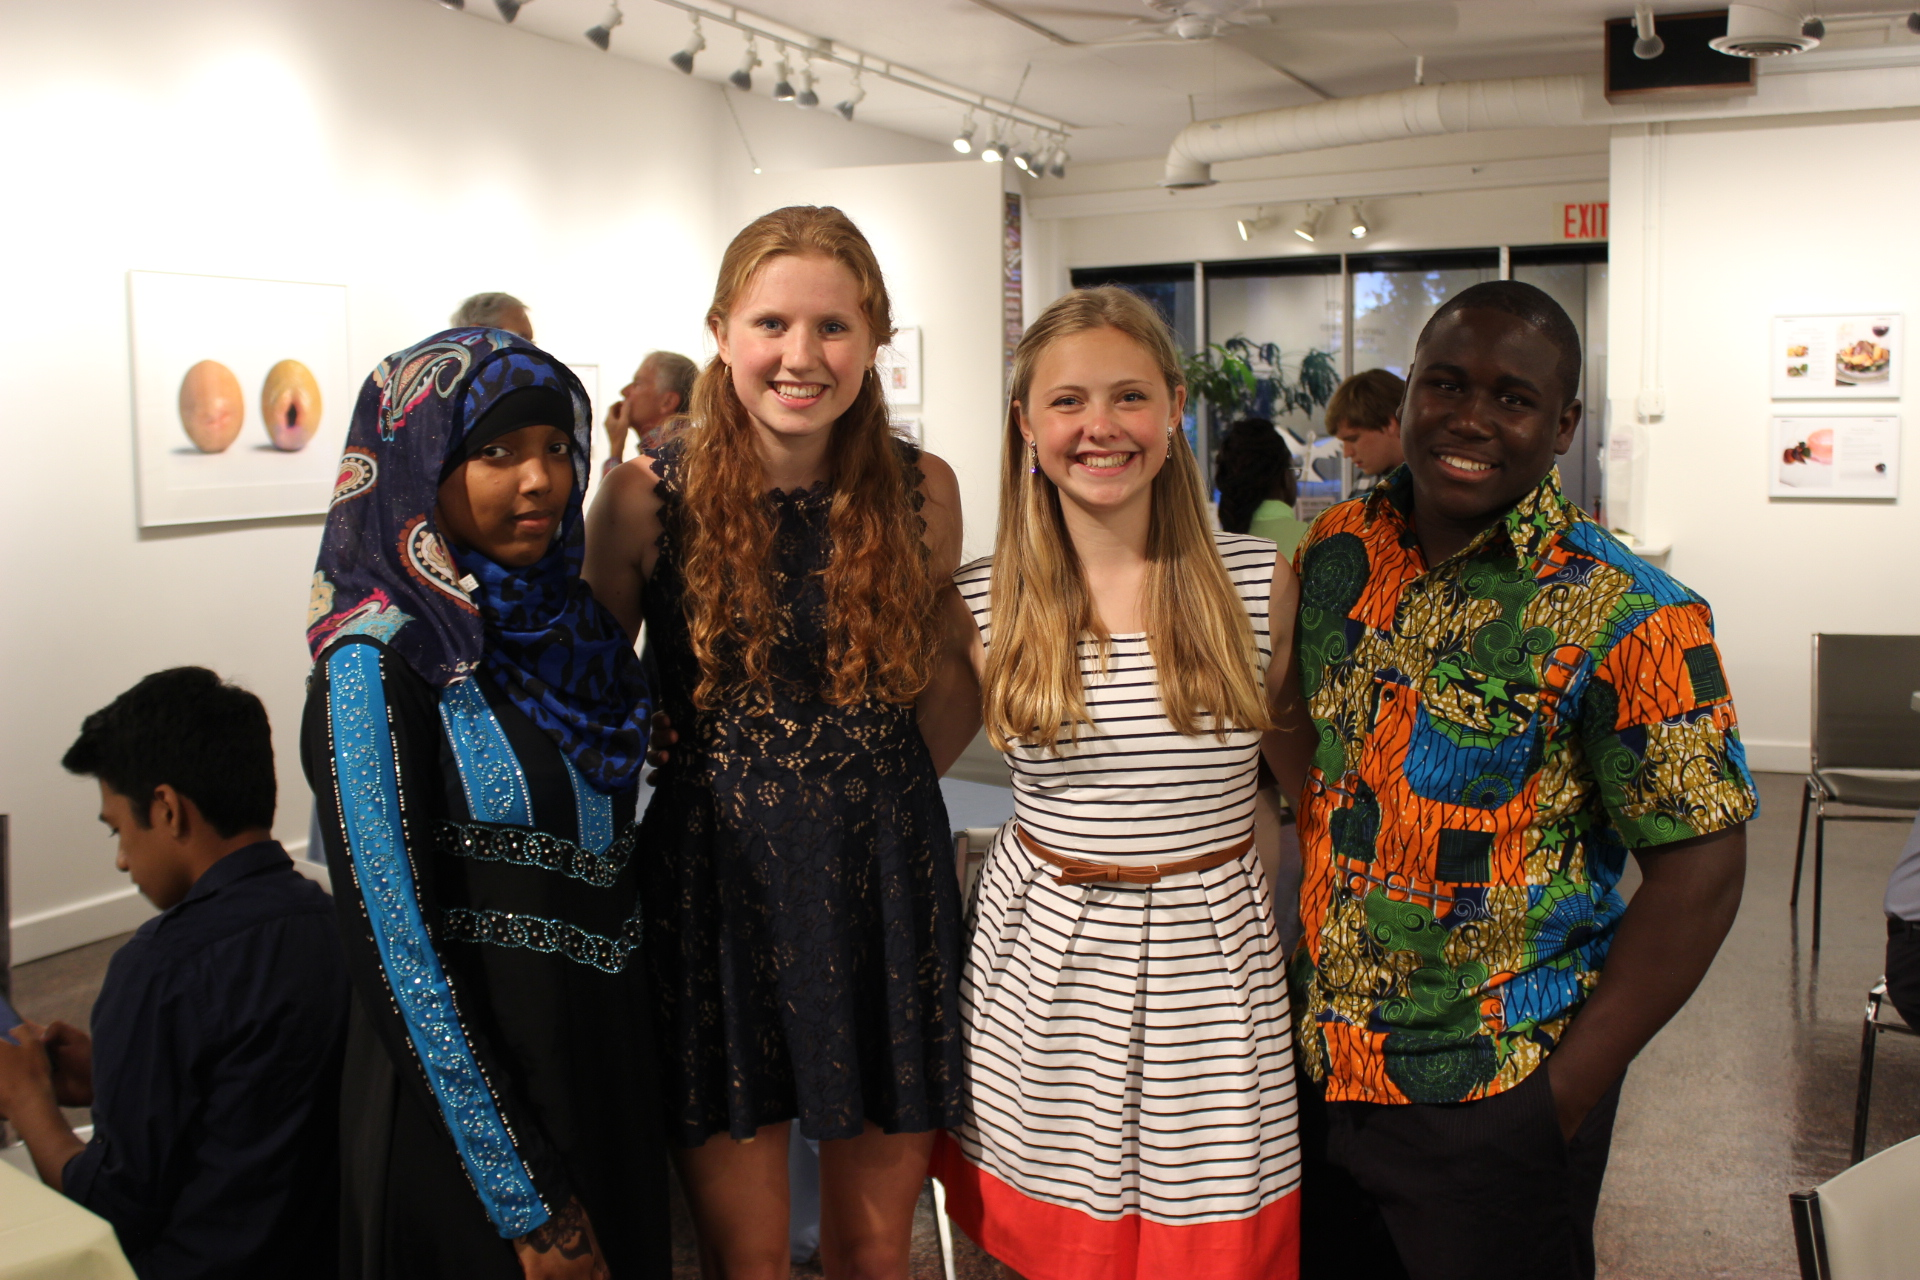 Students at a previous Youth Peace Award posing for a photo at ArtRage.